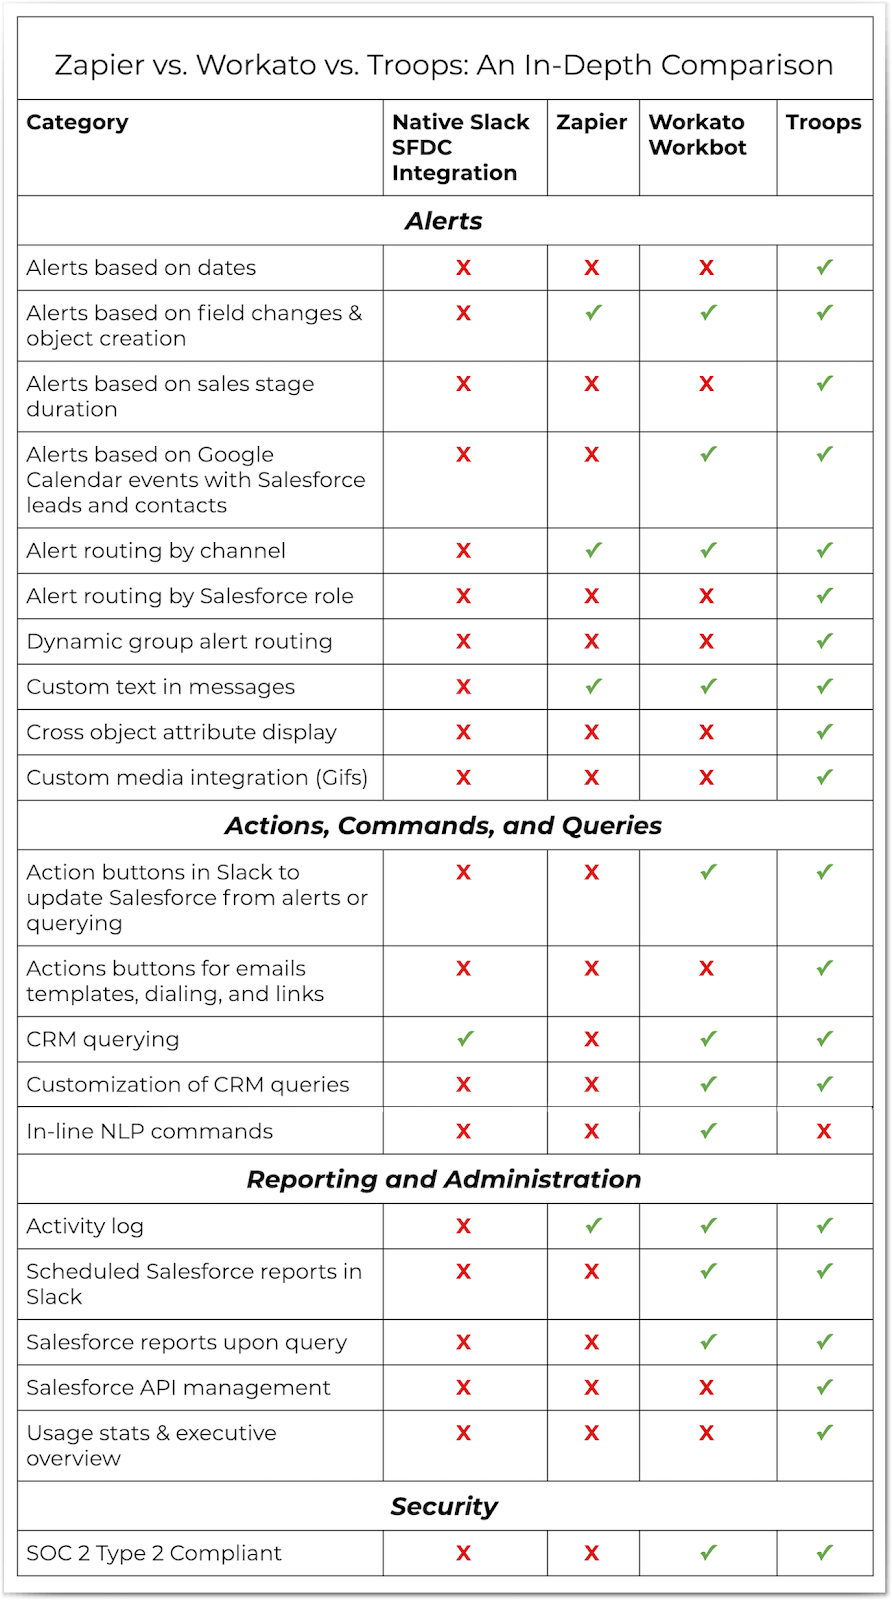 Zapier vs. Workato vs. Troops: decide which Slack and Salesforce integration is right for your organization with this in-depth comparison.